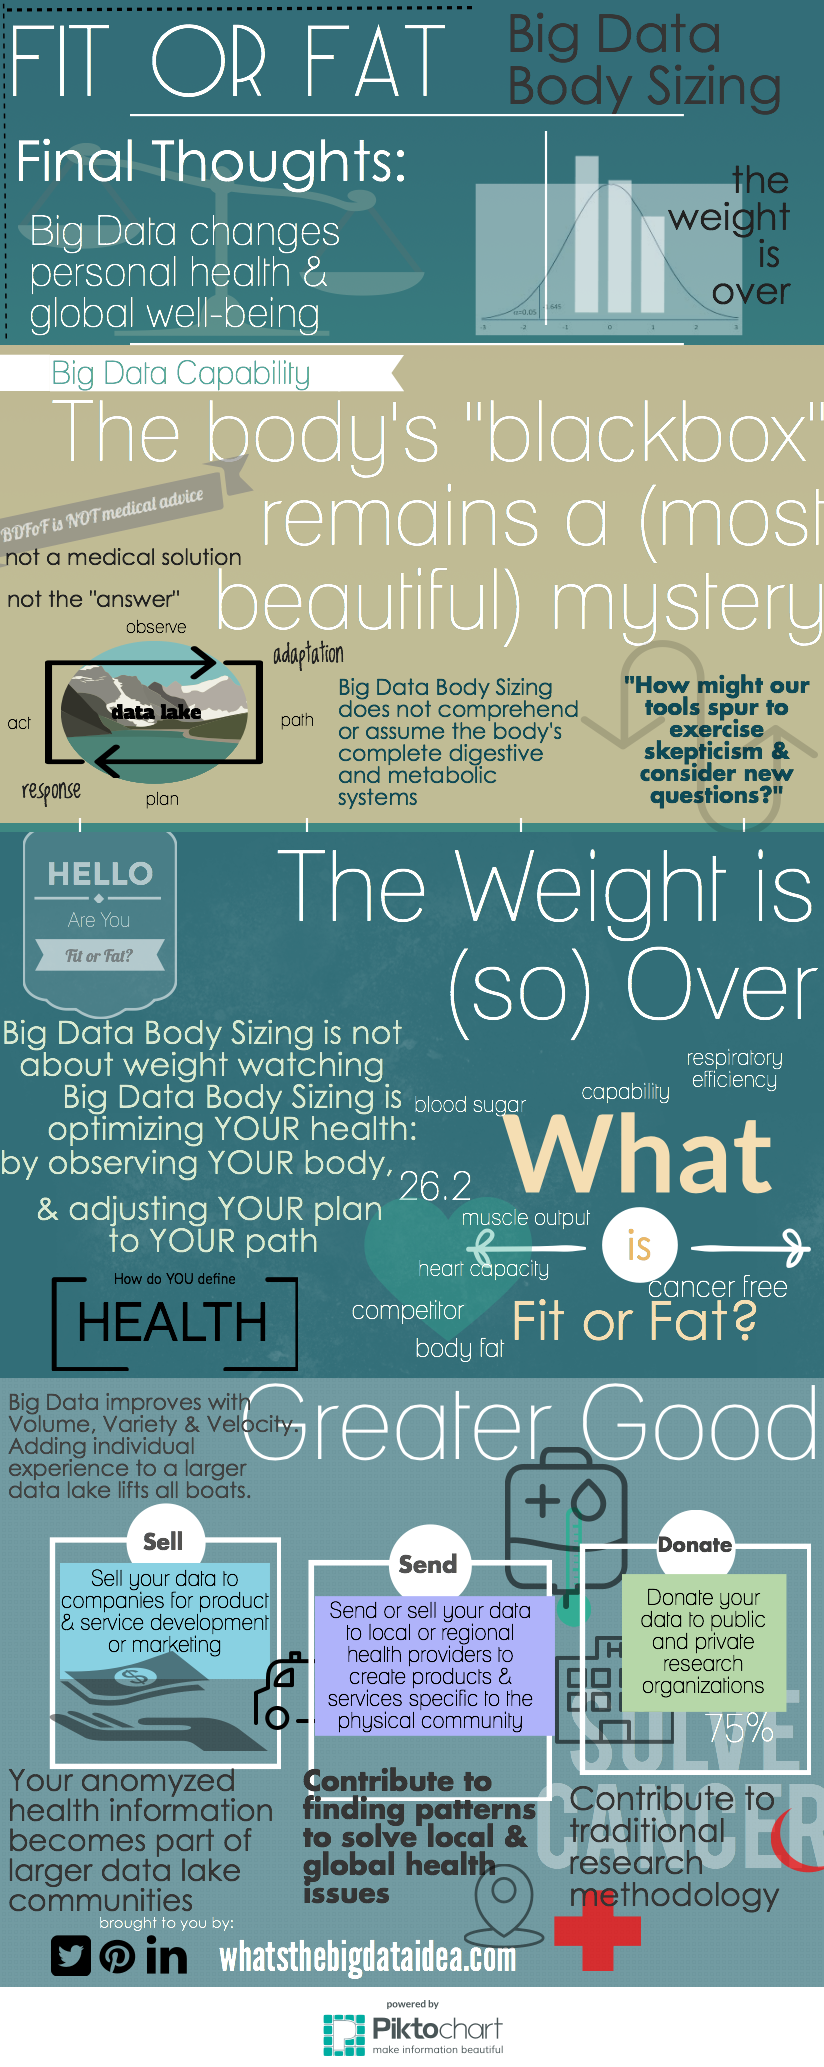 Big Data Fit or Fat Final Thoughts-6